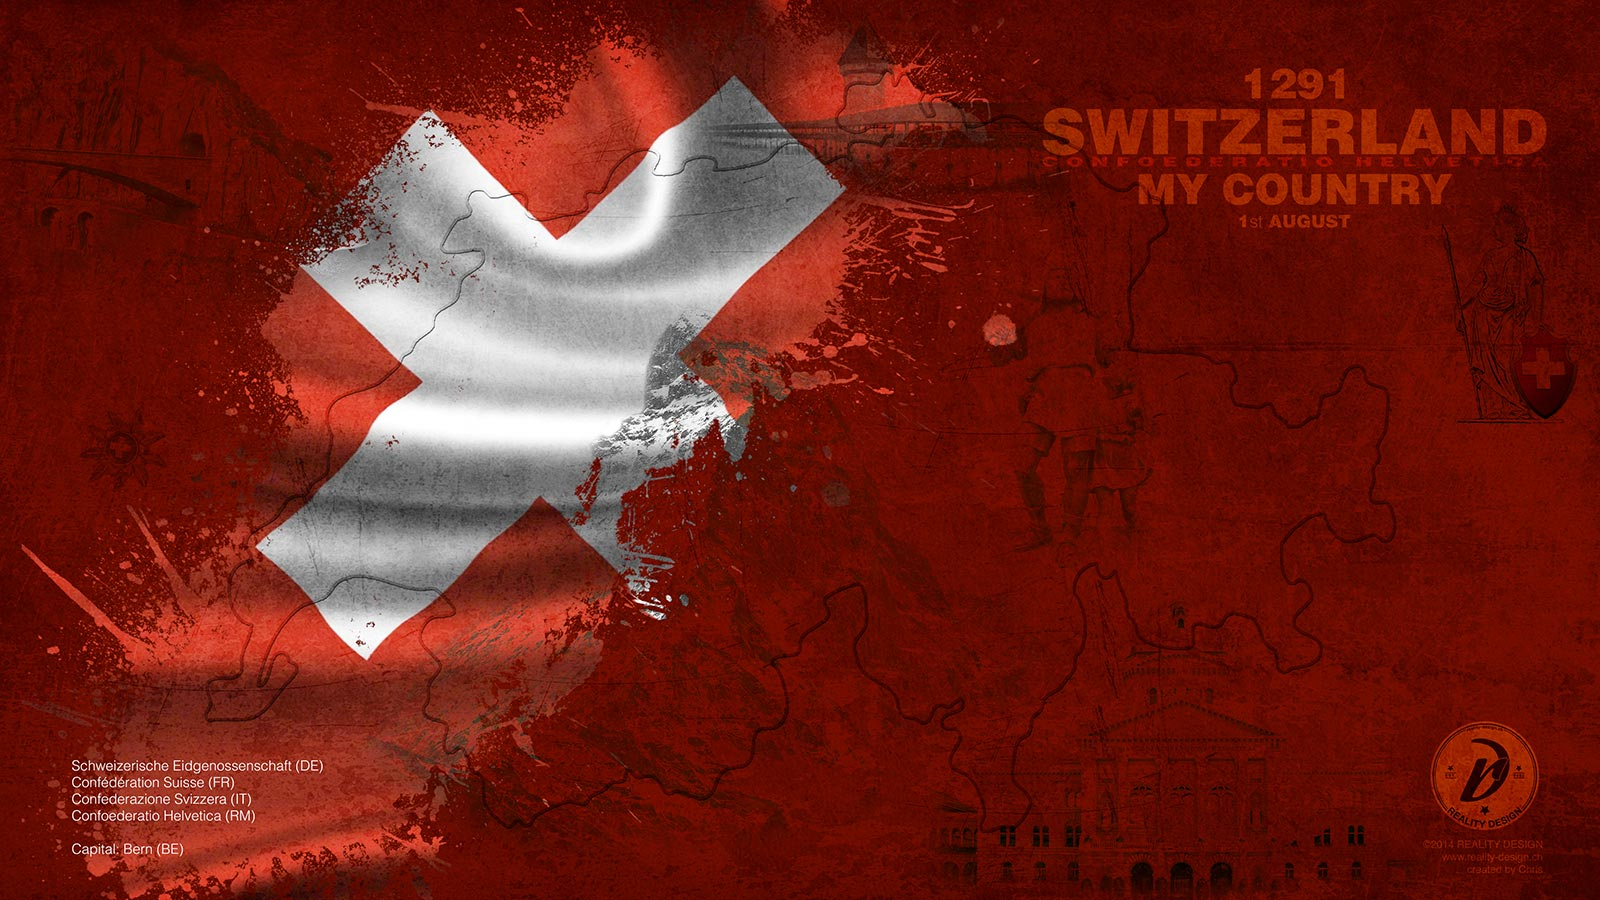 Switzerland My Country